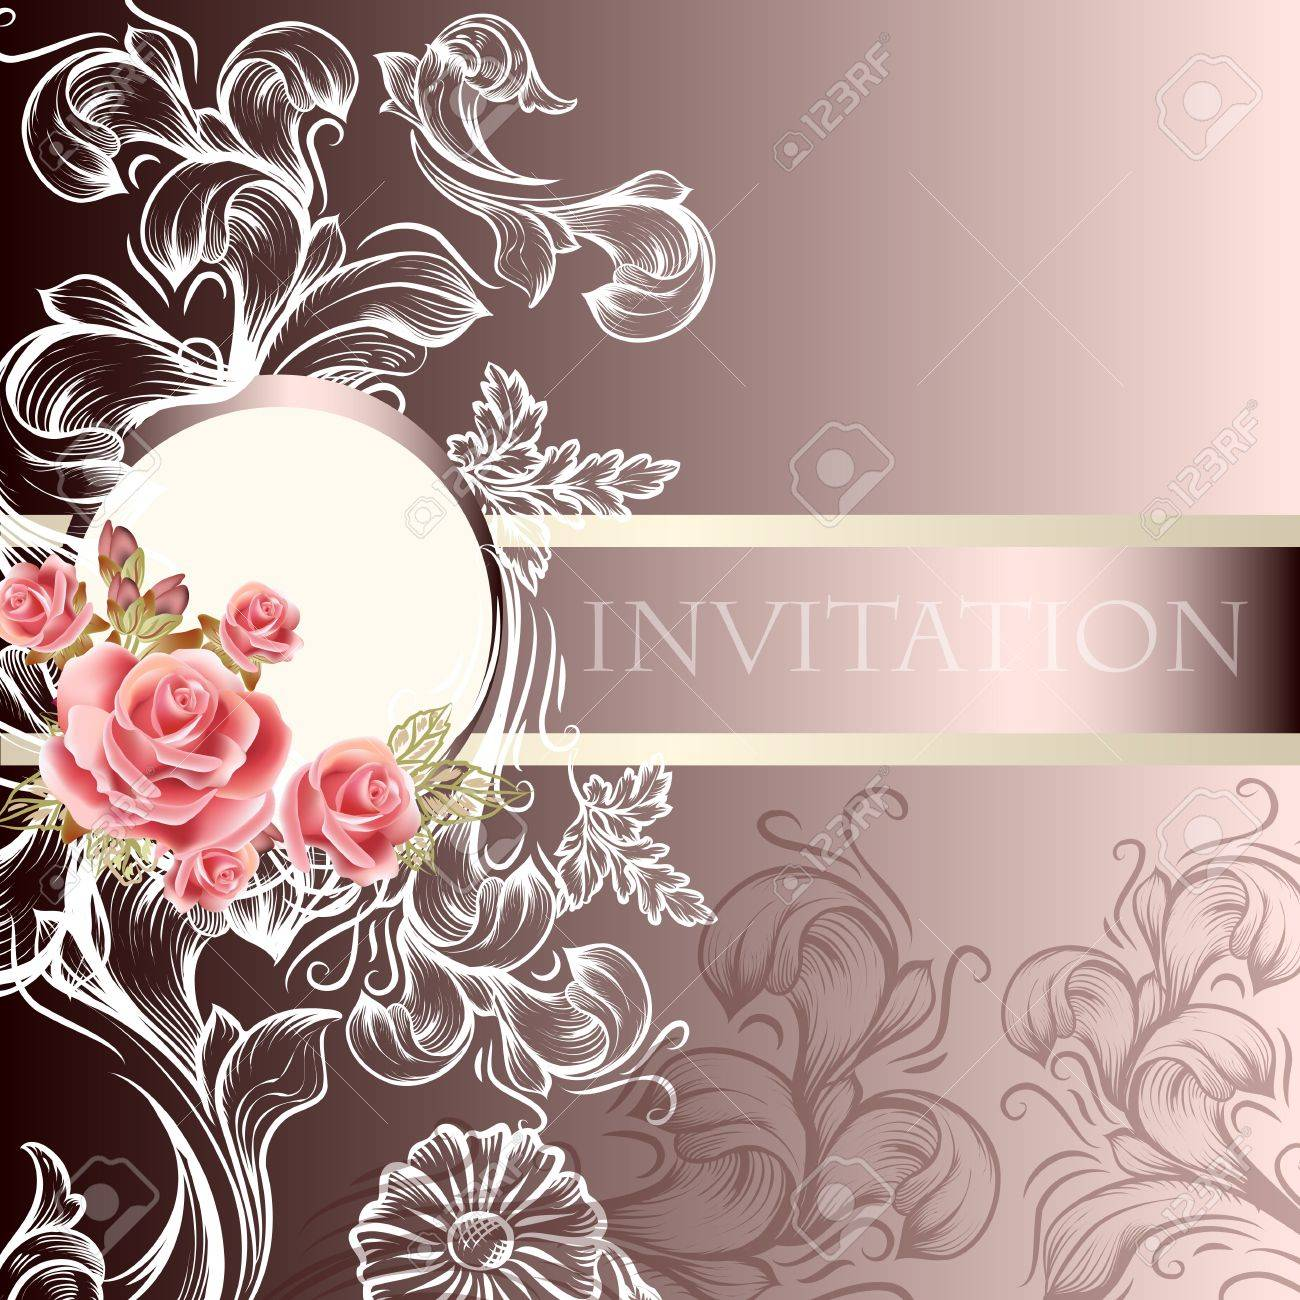 Hand Drawn Wedding Invitation Design In Floral Style Royalty Free ...